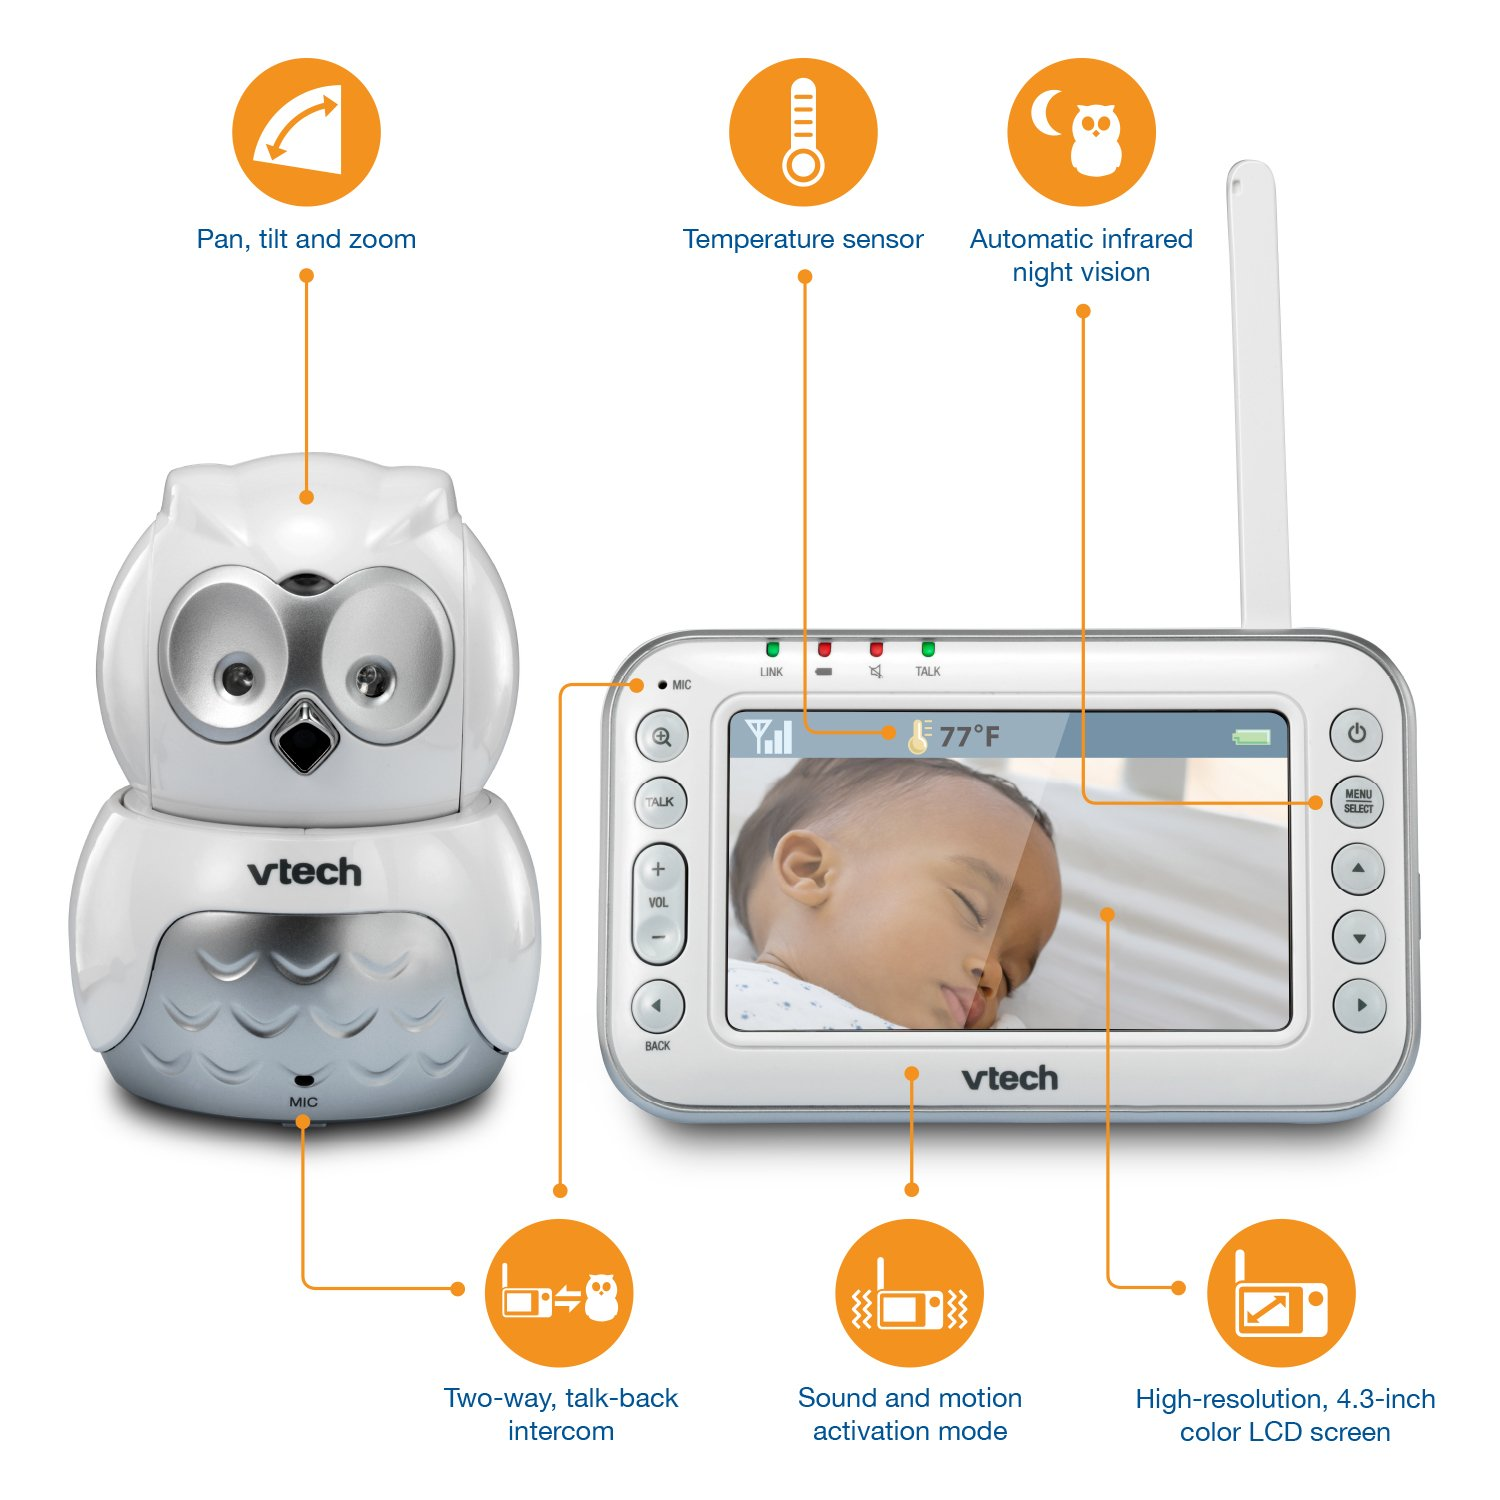 82e4bf51a46 Amazon.com   VTech VM344 Owl Video Baby Monitor with Automatic Infrared  Night Vision, Pan Tilt   Zoom, Temperature Sensor   1, 000 feet of Range    Baby